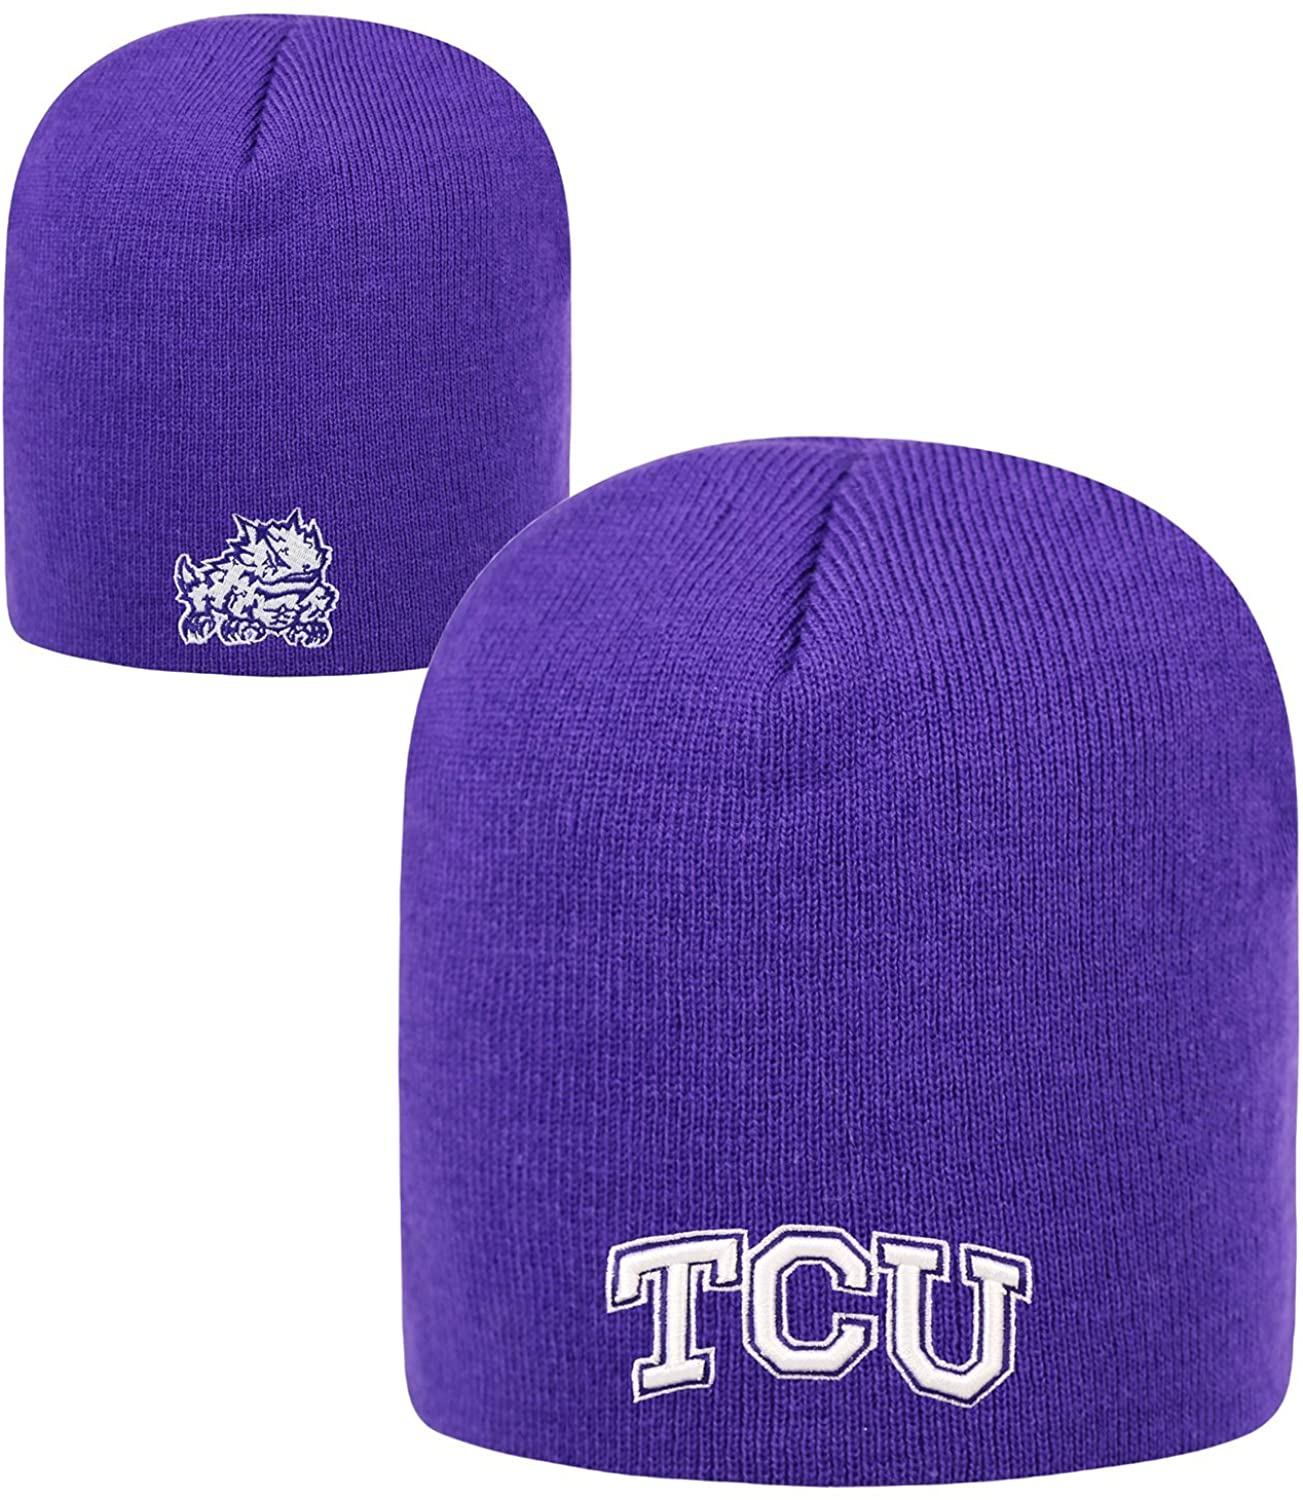 Top of the World TCU Horned Frogs Purple Cuffless 2-Sided Beanie Hat - NCAA Knit Skull Cap